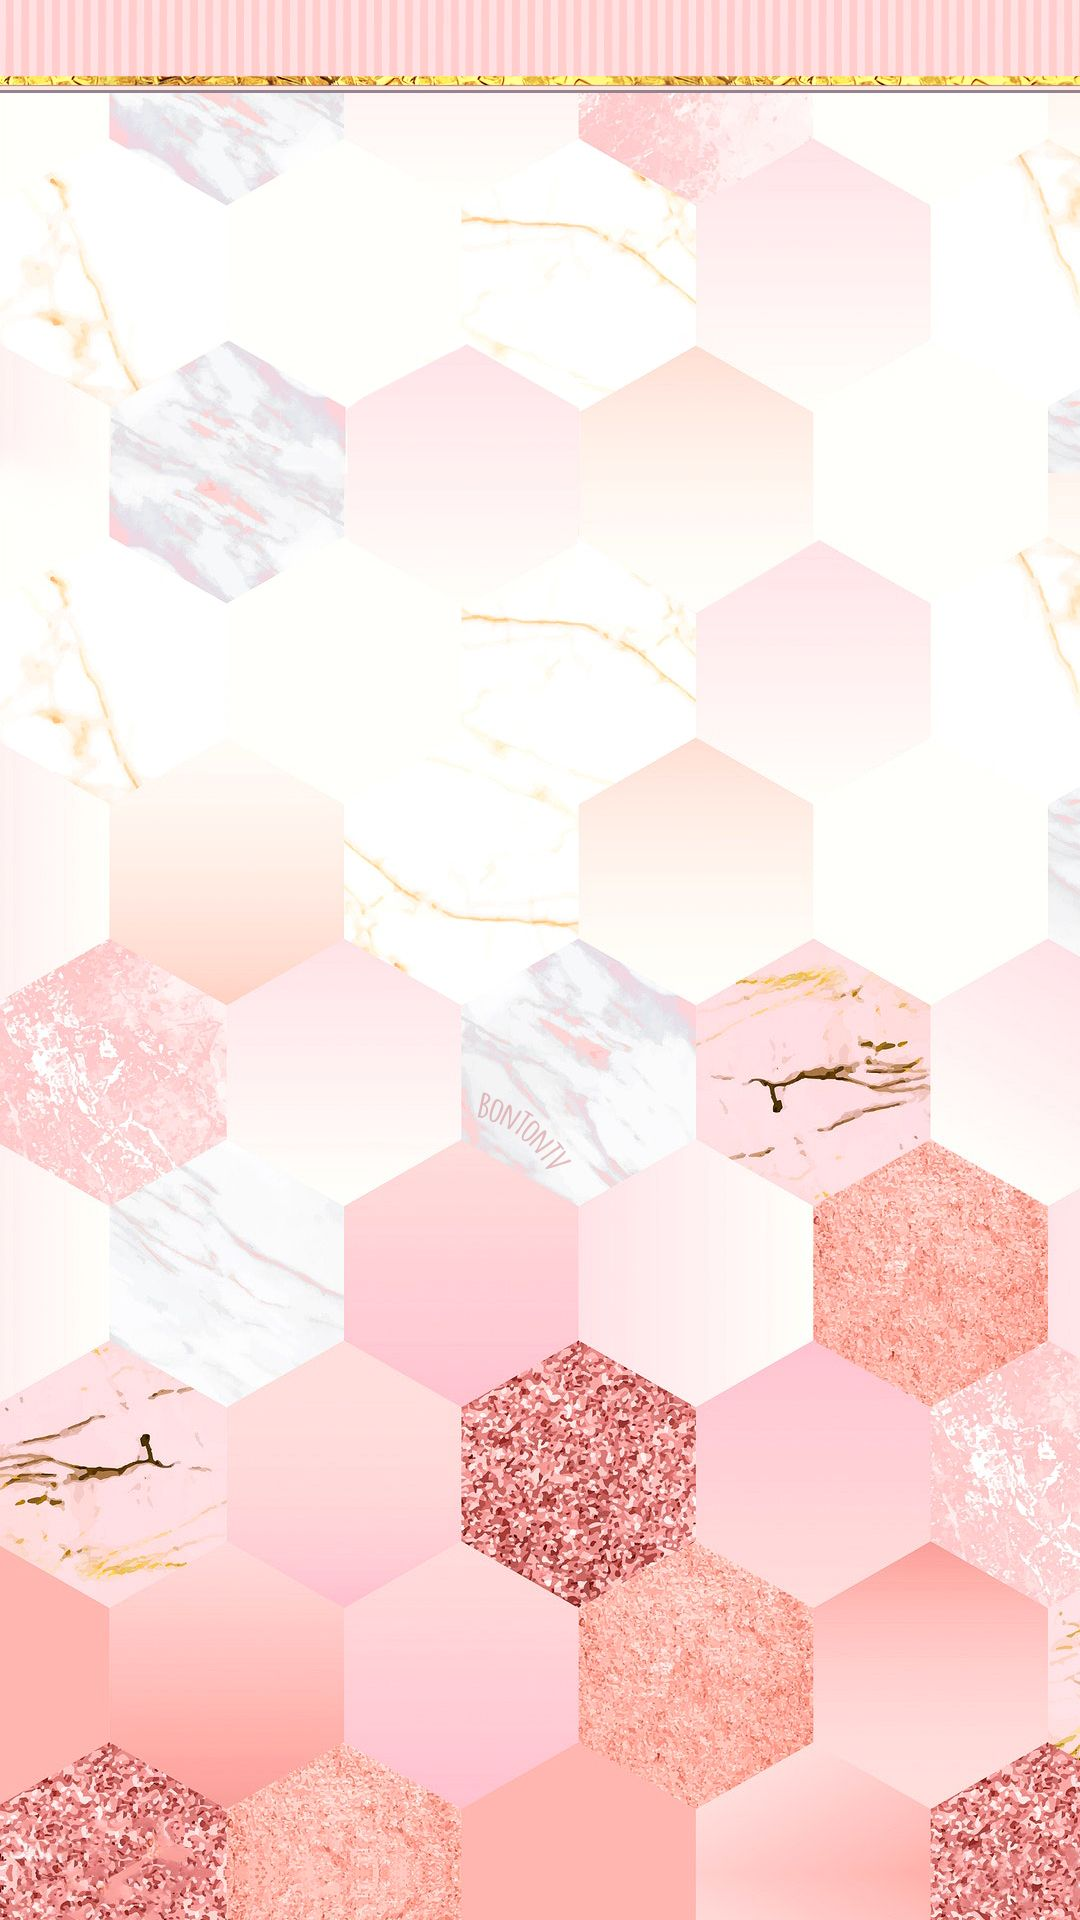 Phone Wallpapers Hd Cute Girly Pink Hexagons With Gold By Bonton Tv Free Backgrounds 1080x1920 Wallpap Geometric Background Pink Background Phone Wallpaper